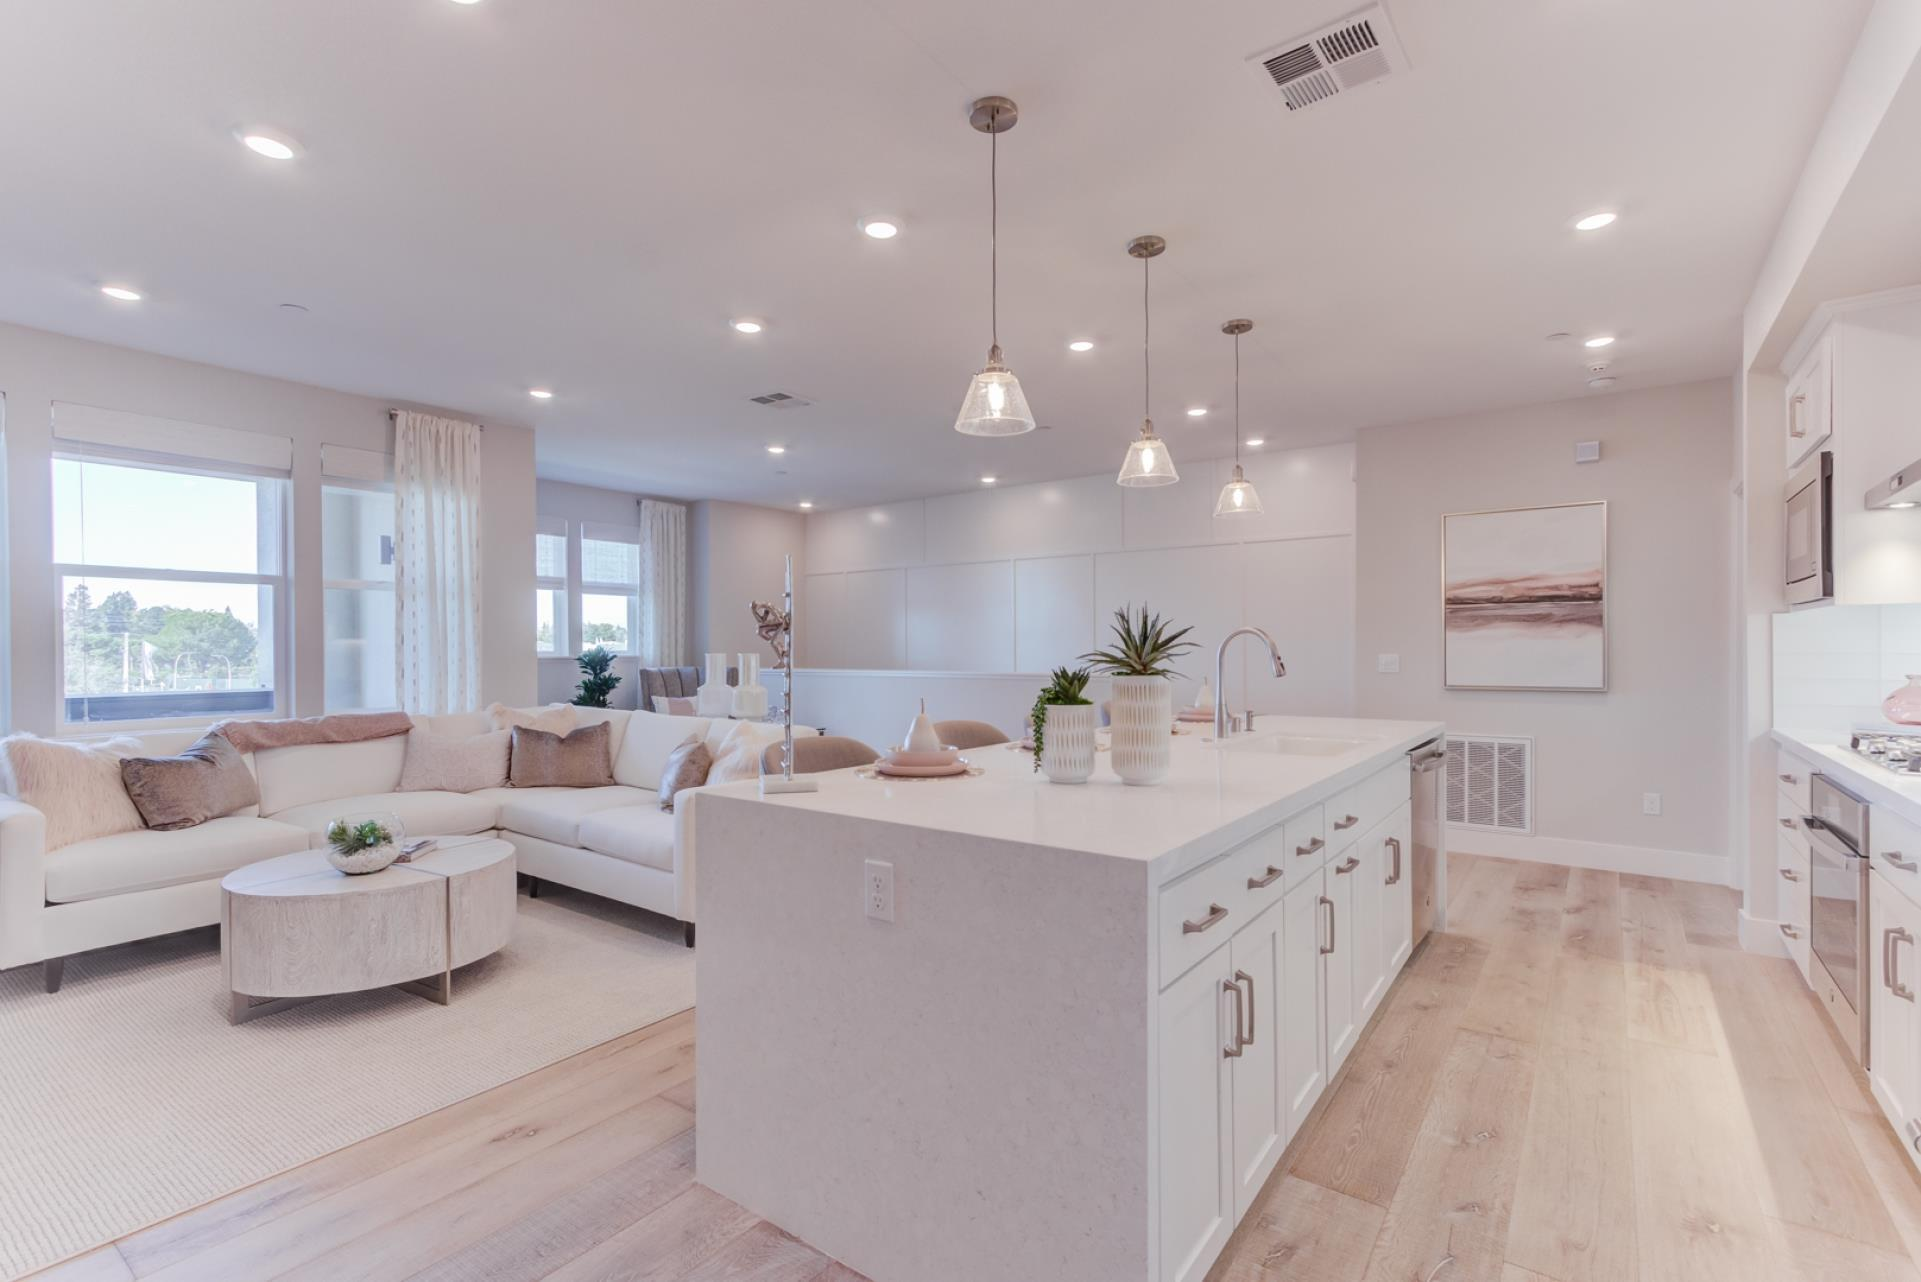 Living Area featured in the Terraces Plan 1 By SummerHill Homes in San Jose, CA